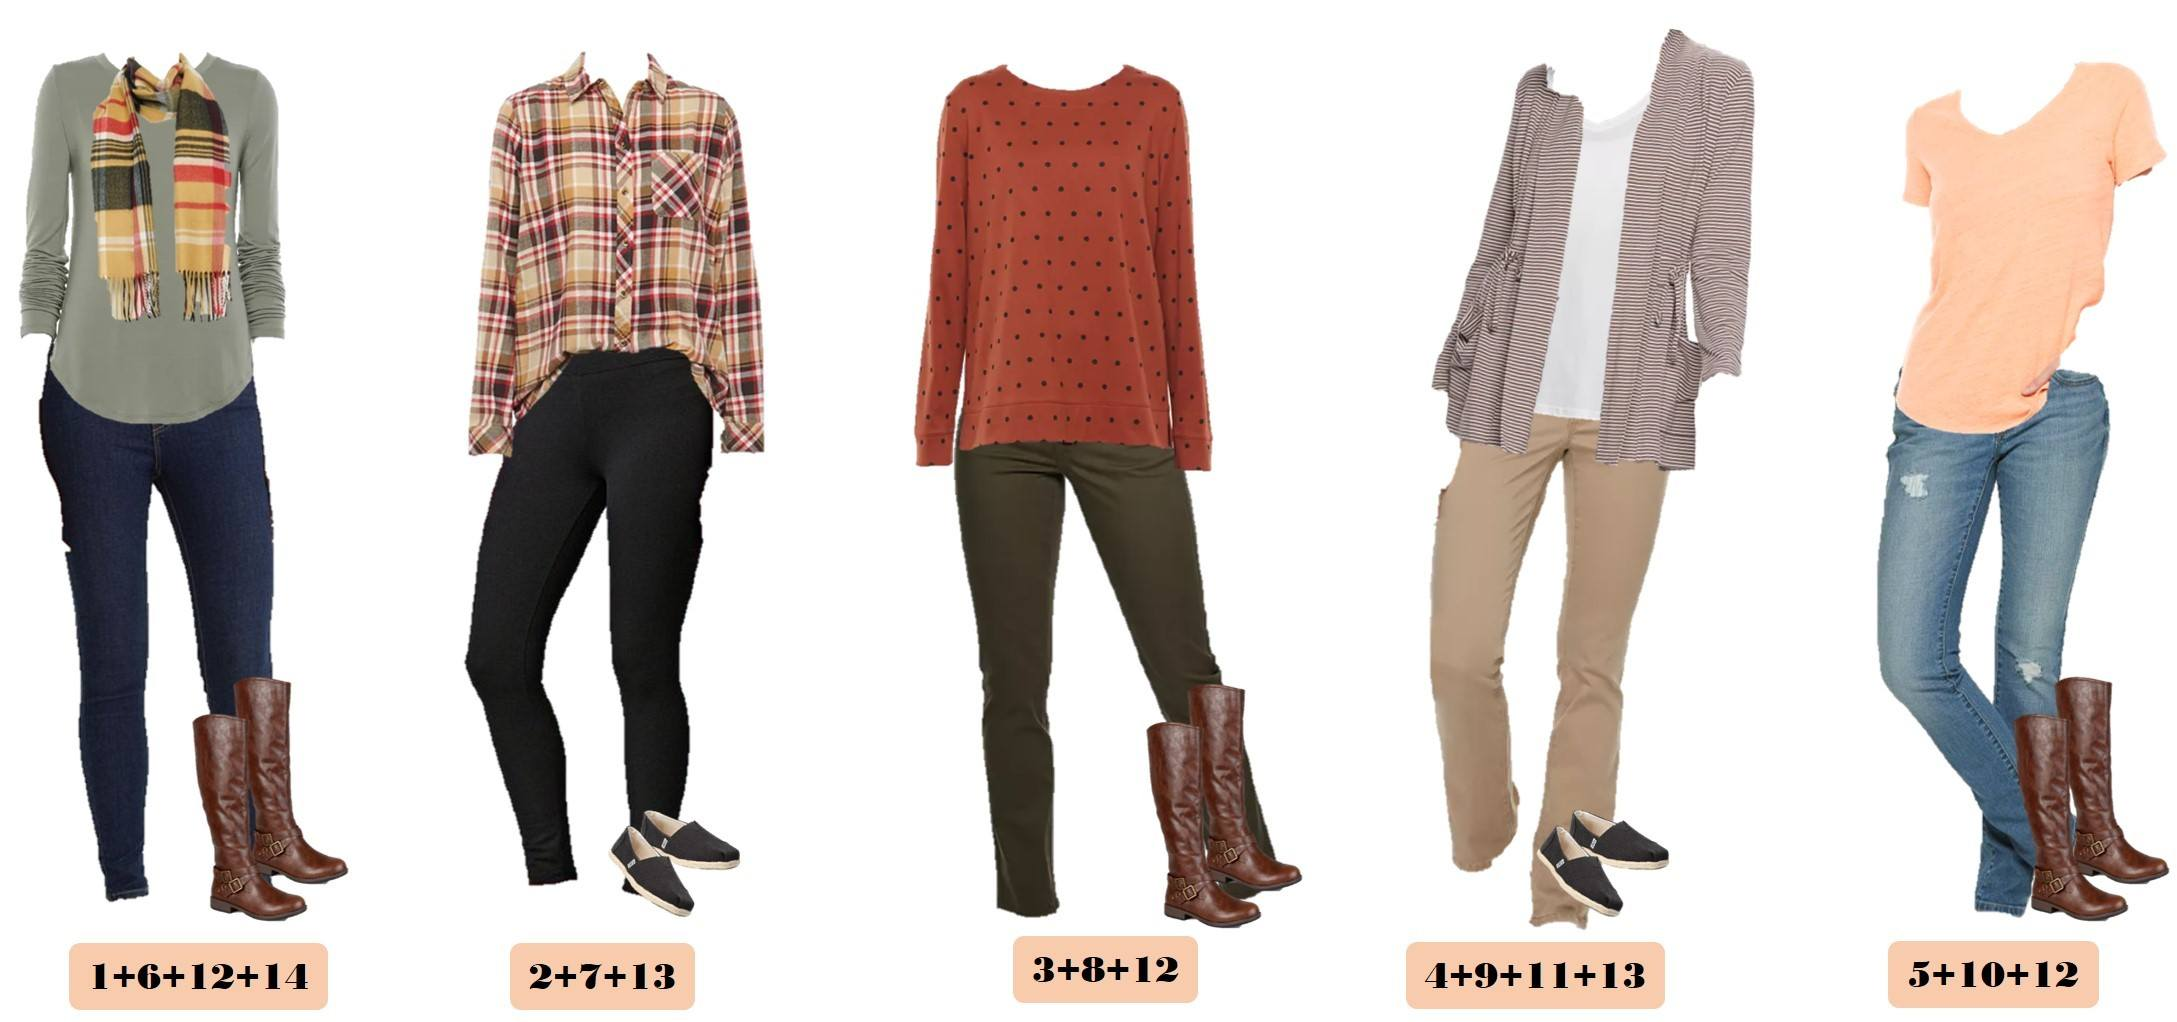 Fall Outfits from Kohls - cozy scary, grety shirt, jeans, boots and more